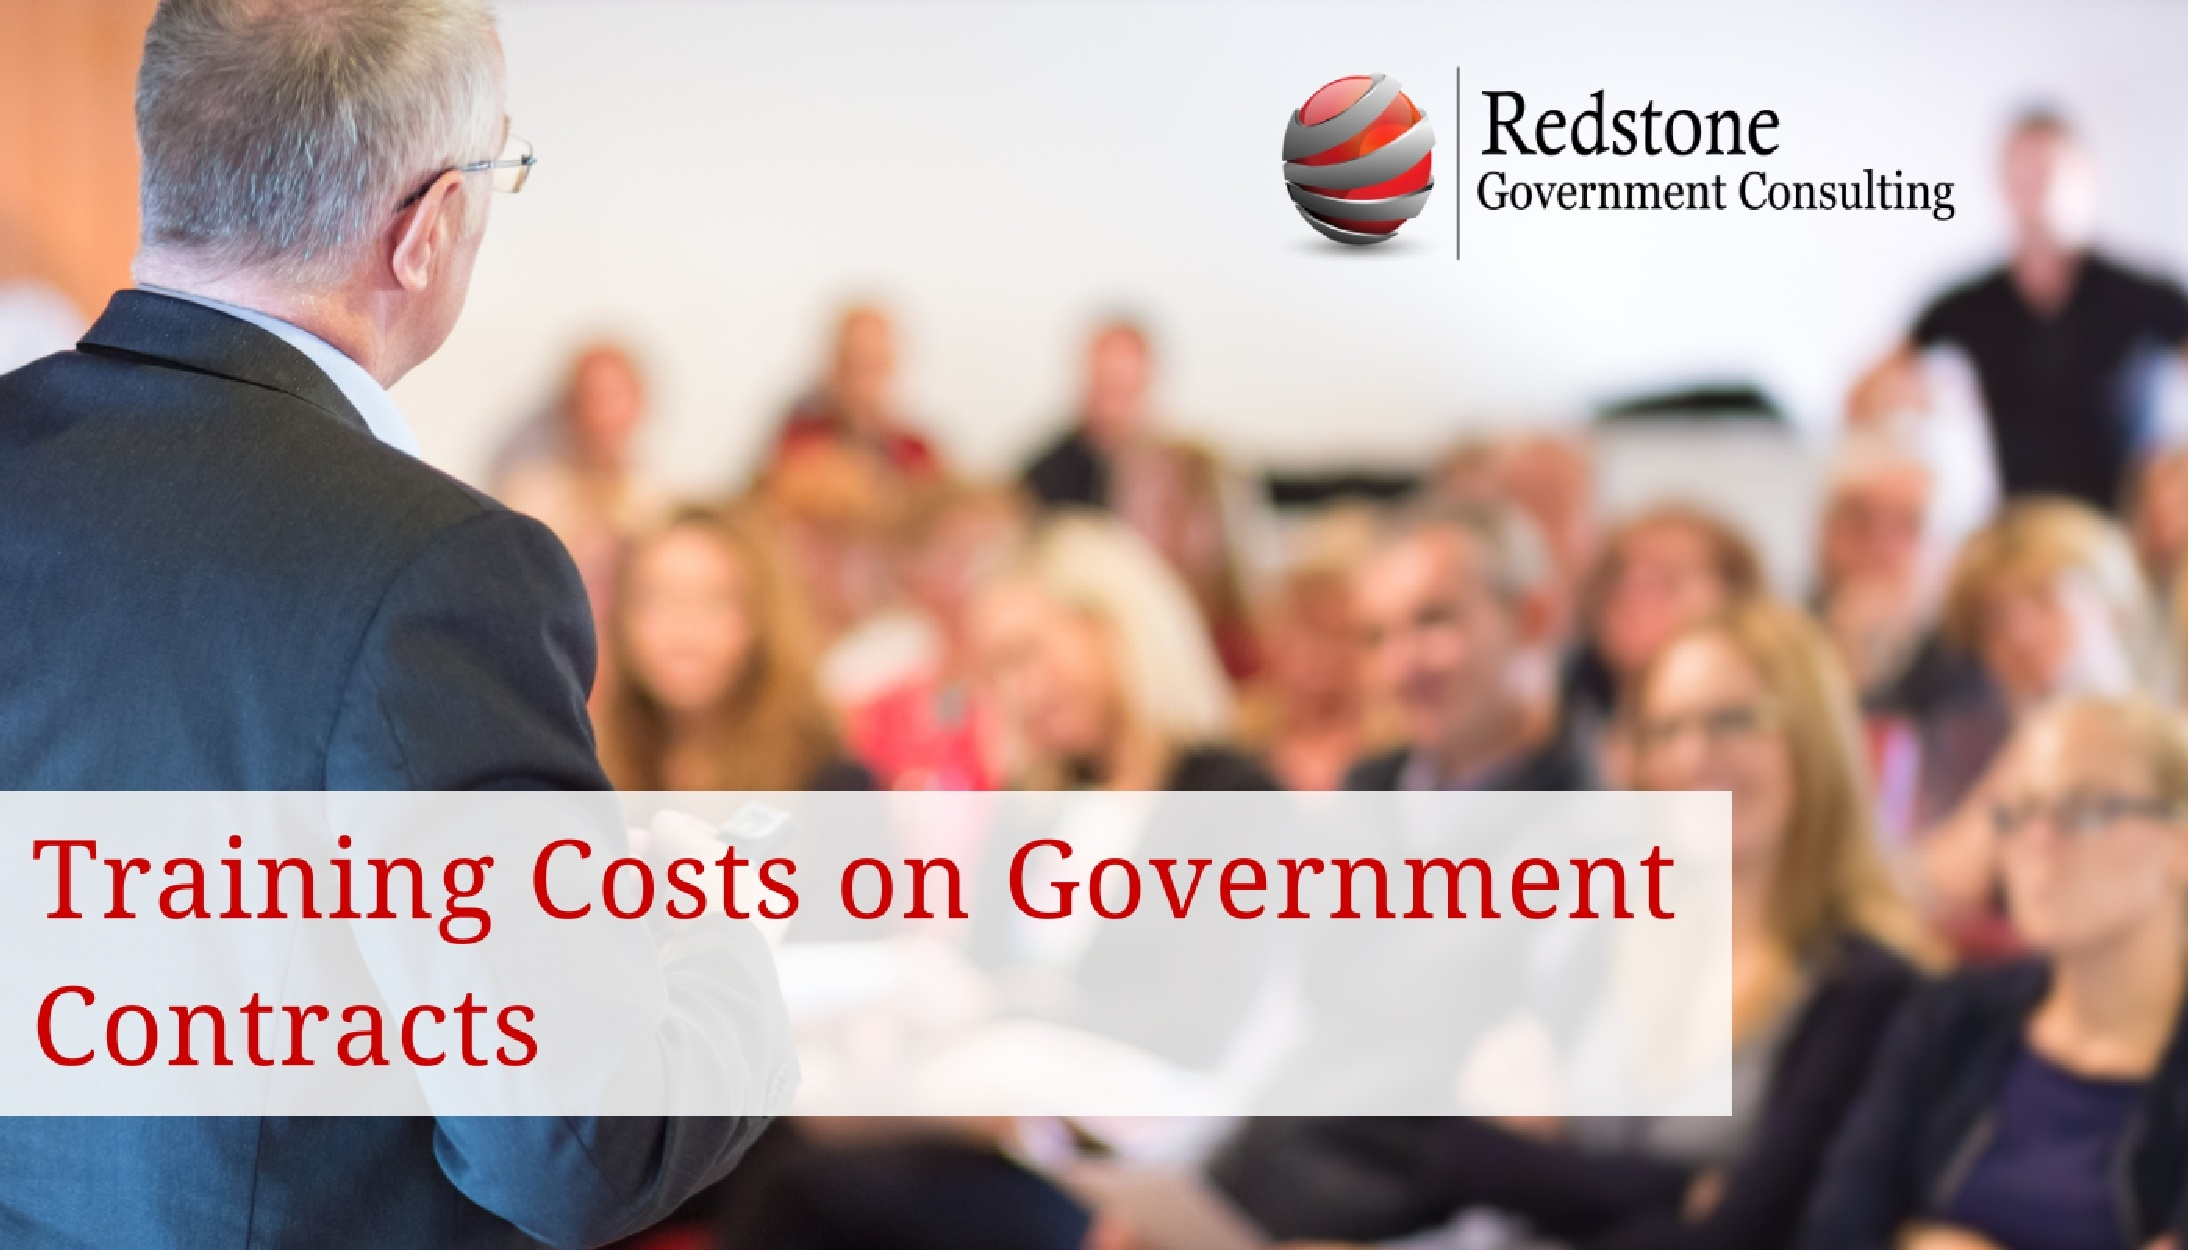 Redstone - Training Costs on Government Contracts.jpg